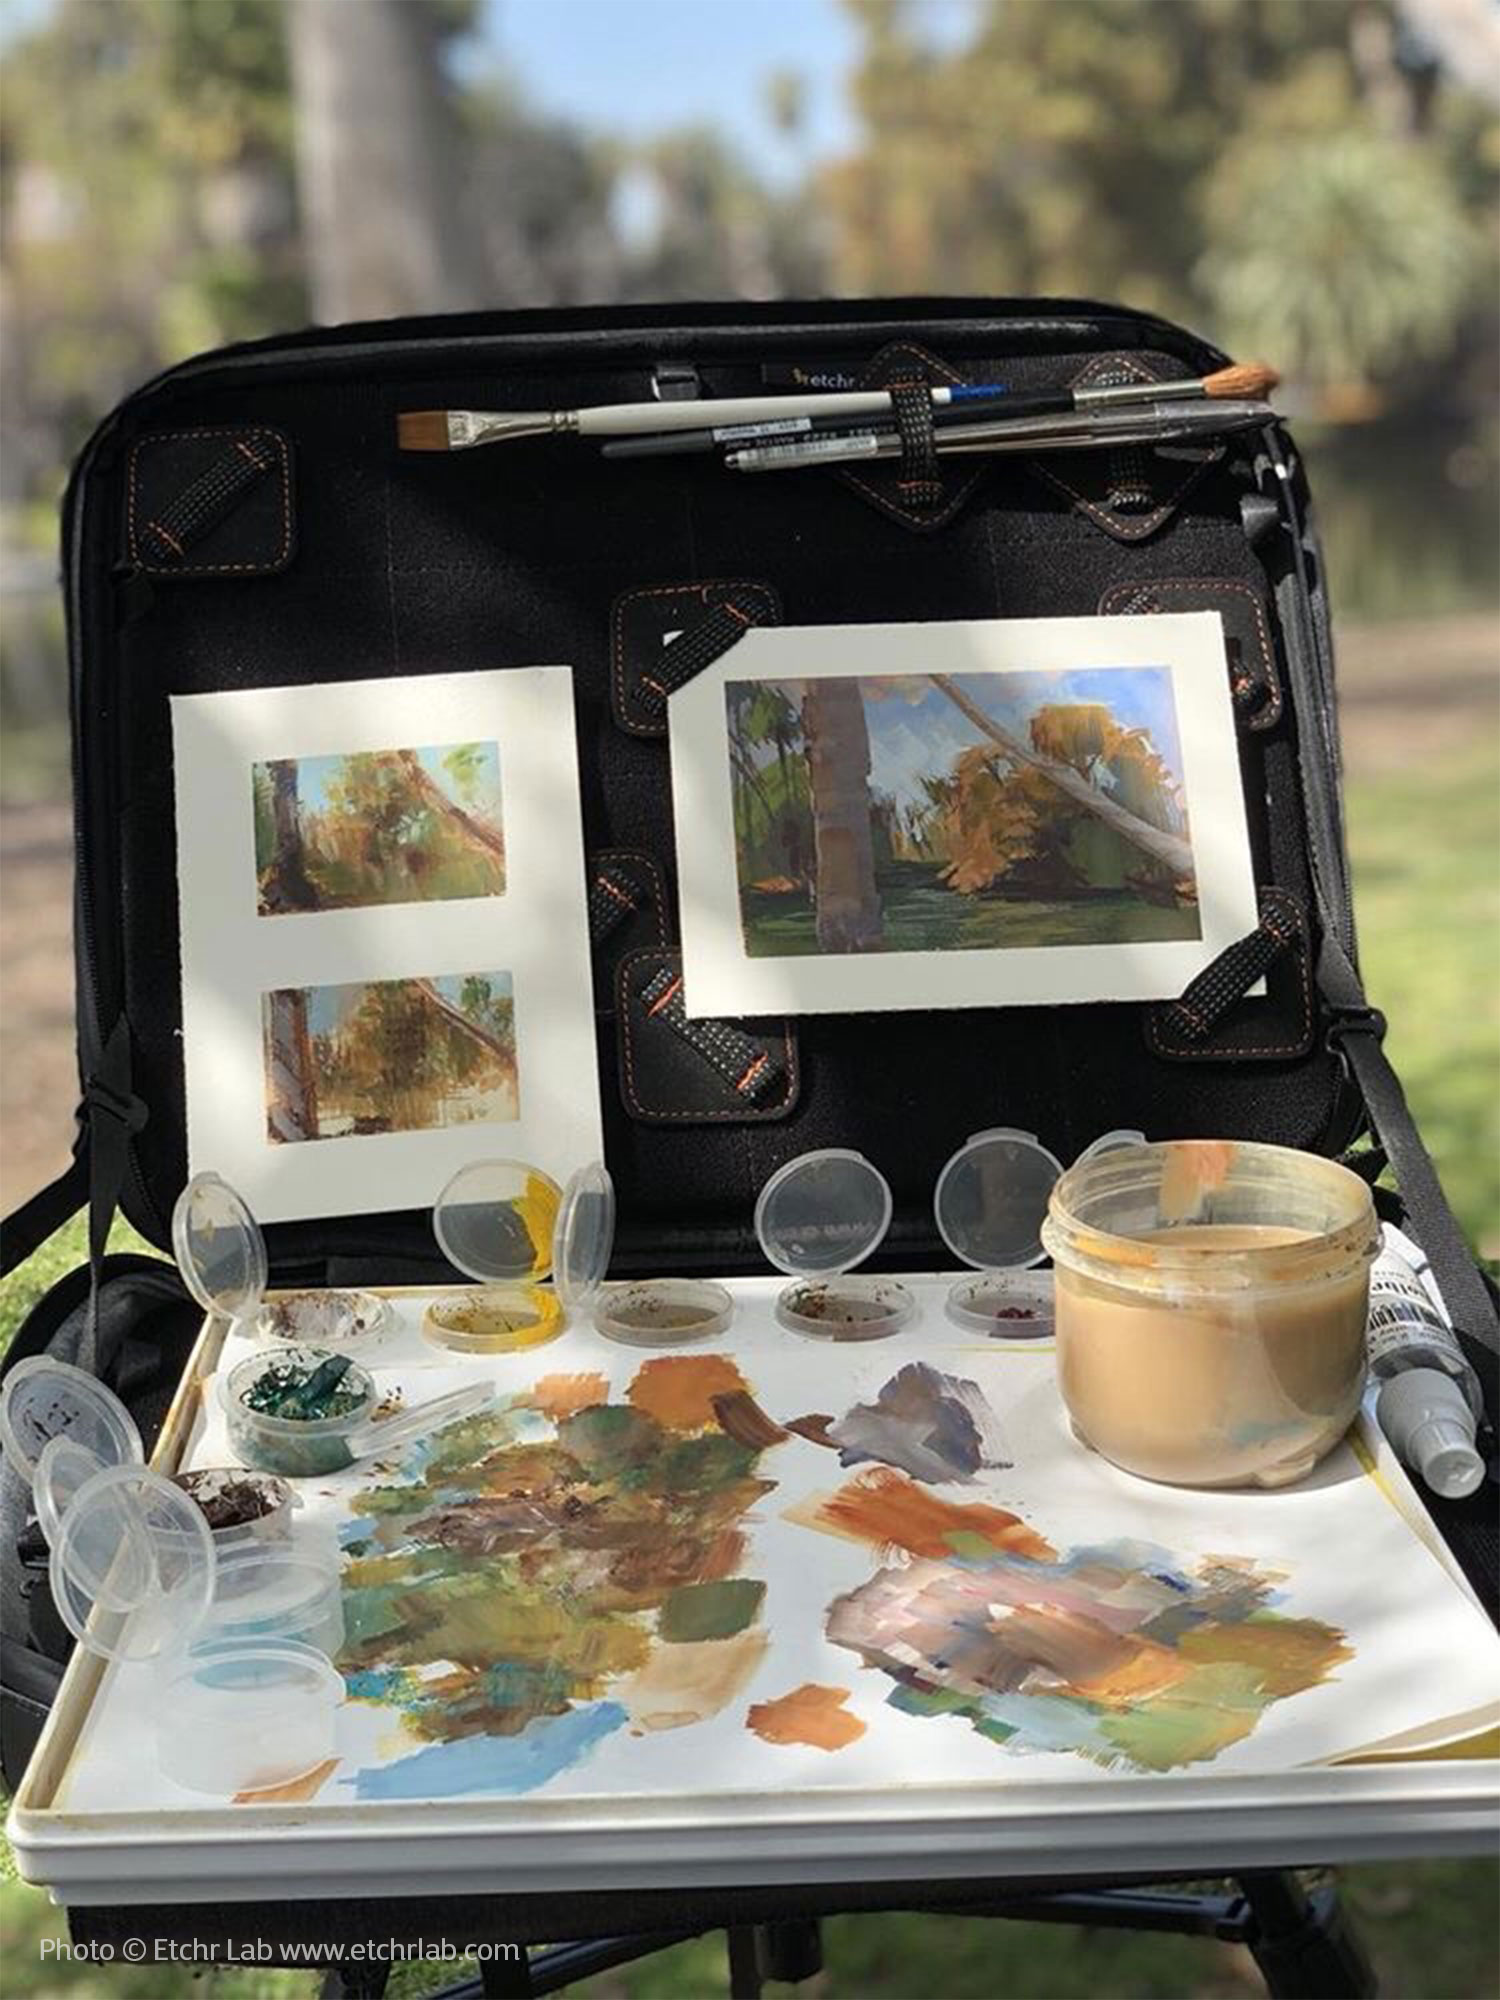 Photo ©Etchr Lab www.etchrlab.com Photo shows the Etchr Slate Satchel open and set up as a water color easel